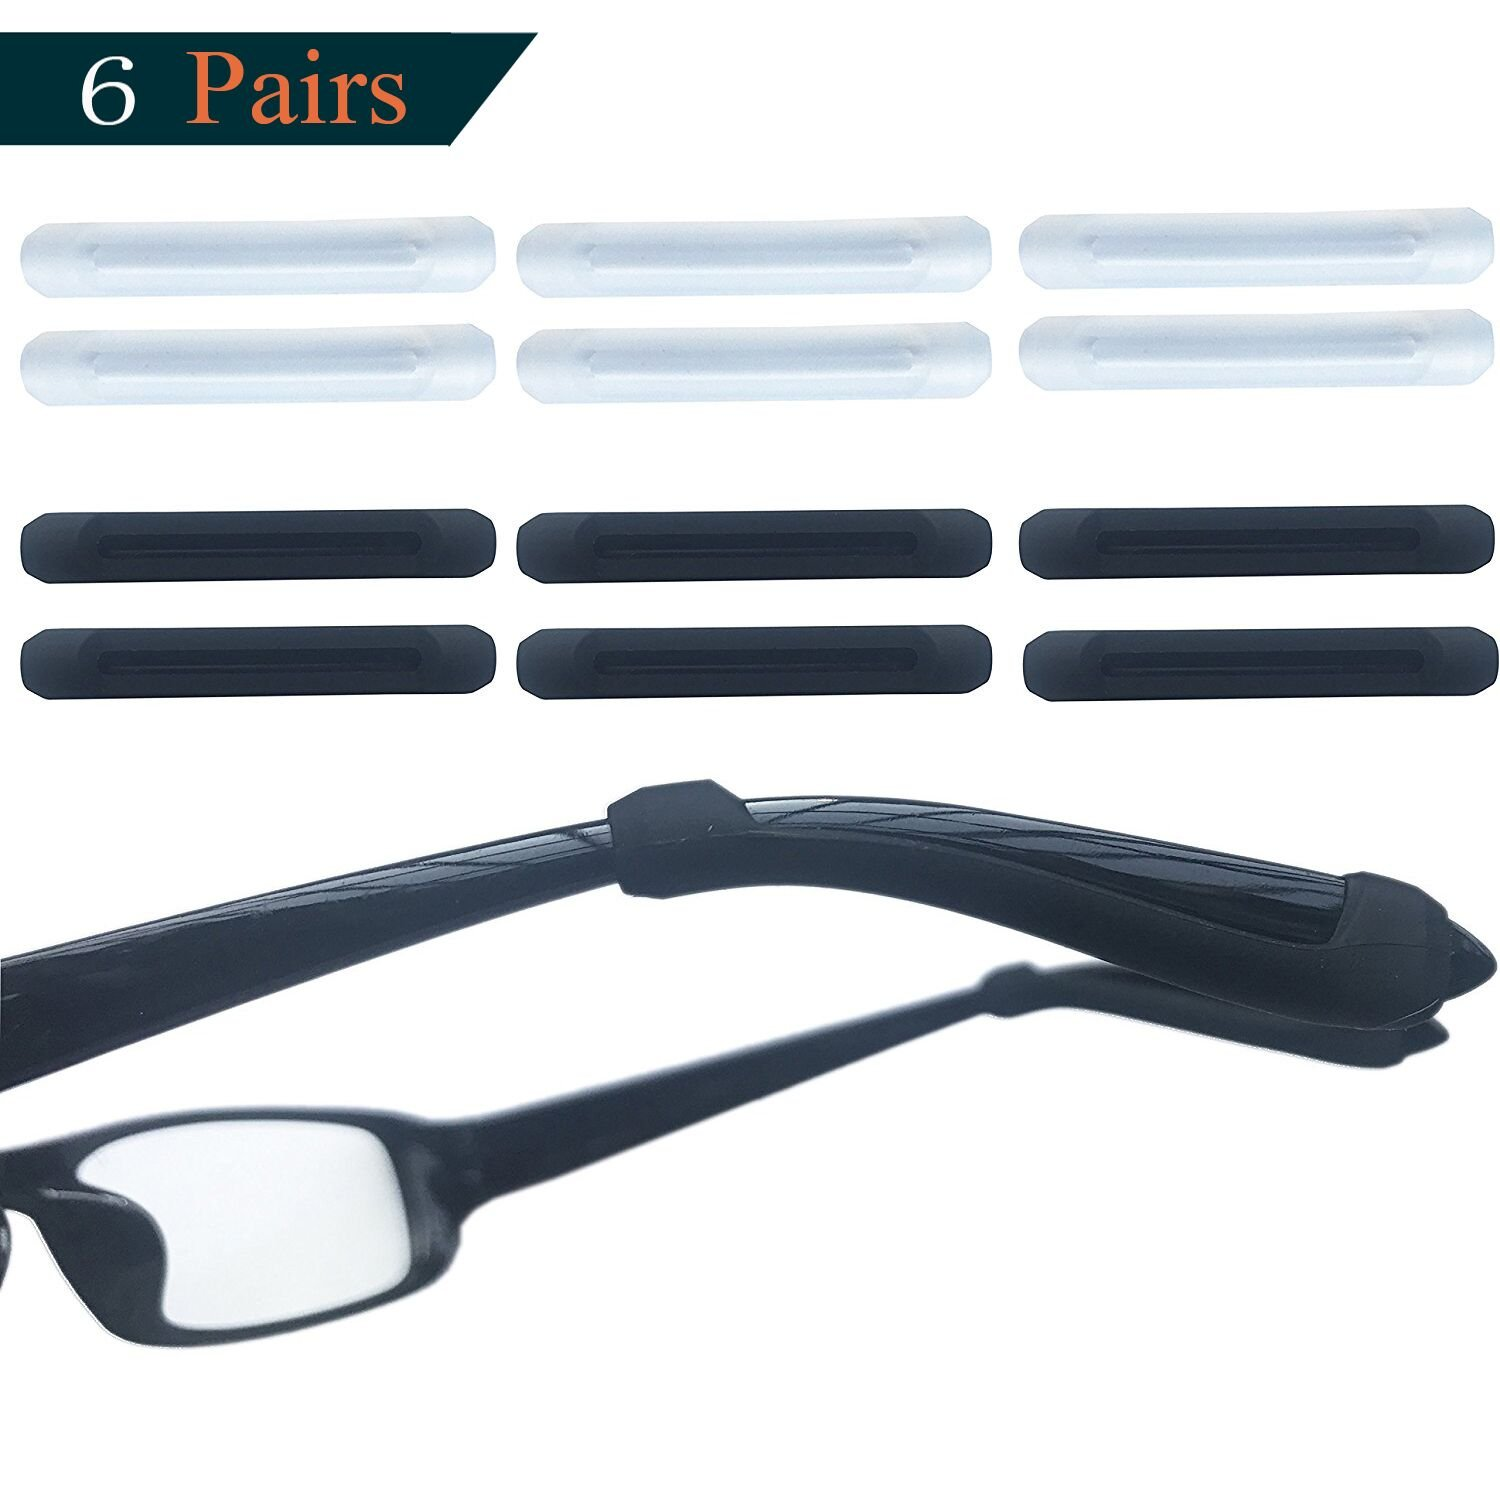 e83cc514560 Get Quotations · MOLDERP 6 Pairs Silicone Glasses Ear Hooks Sport Eyeglass  Strap Holder Temple Tips Spectacle Retainers